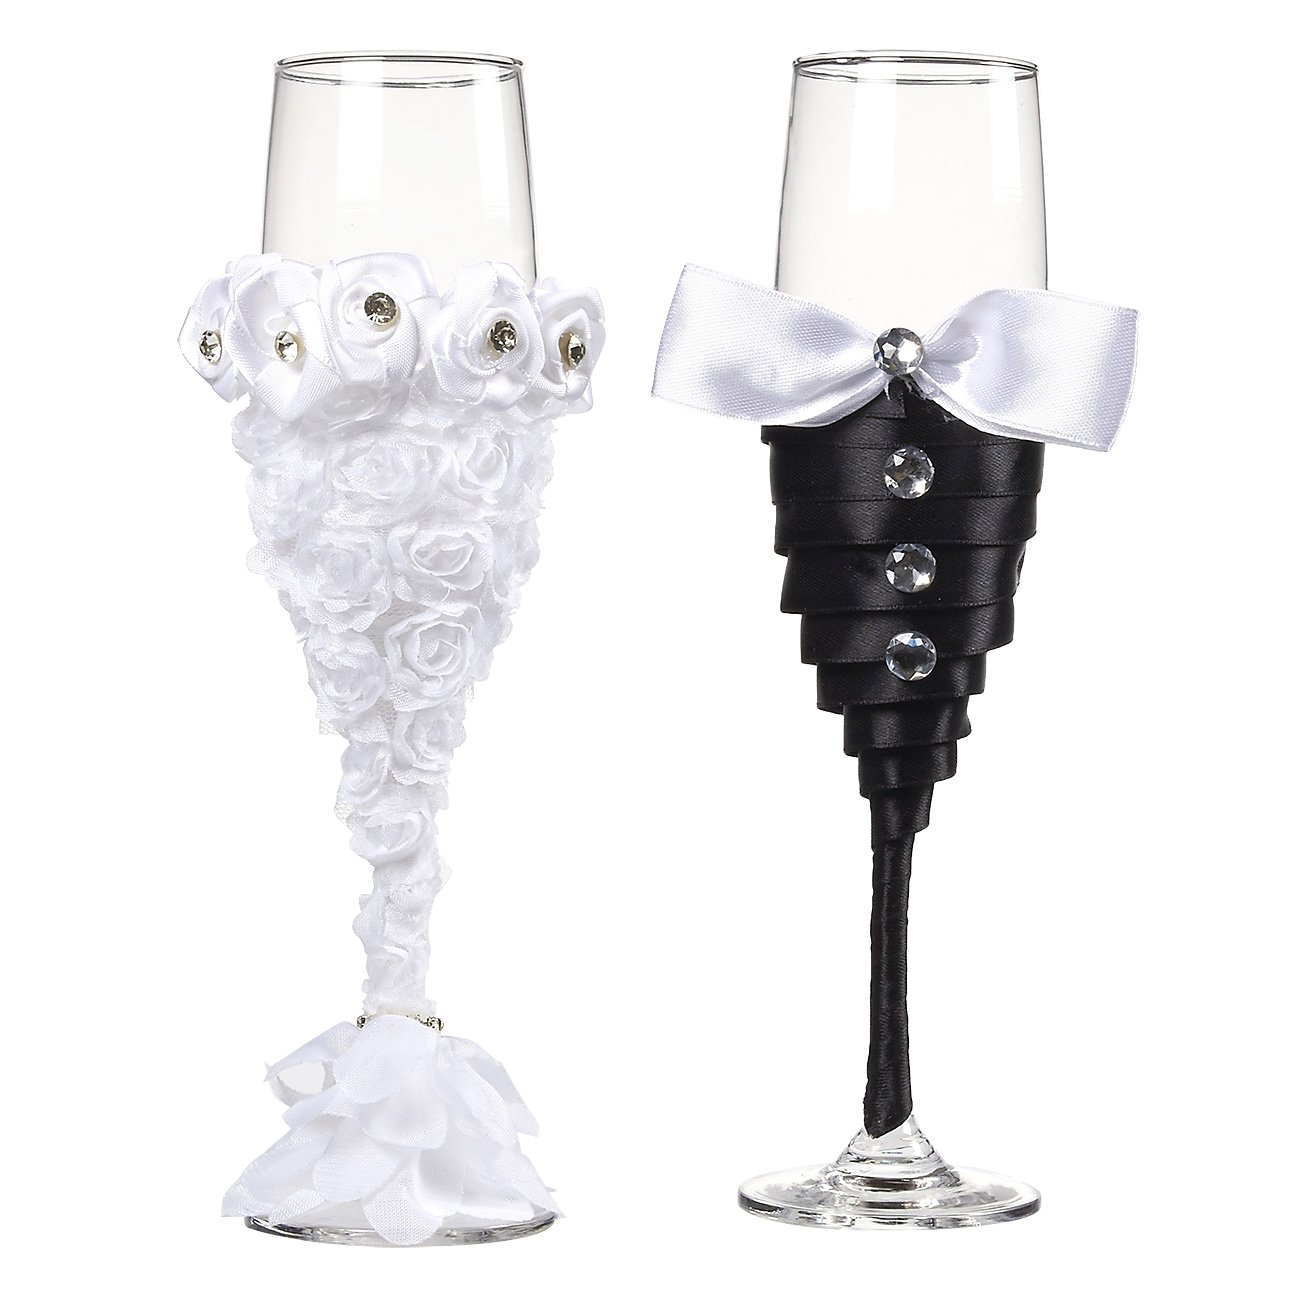 """Juvale Wedding Champagne Flute Glasses - 2-Count Champagne Glasses, """"Mr and Mrs"""" Toasting Flute Set, Decorative Drinking Glasses for Bride and Groom, Black and White, 6.2 Ounce"""